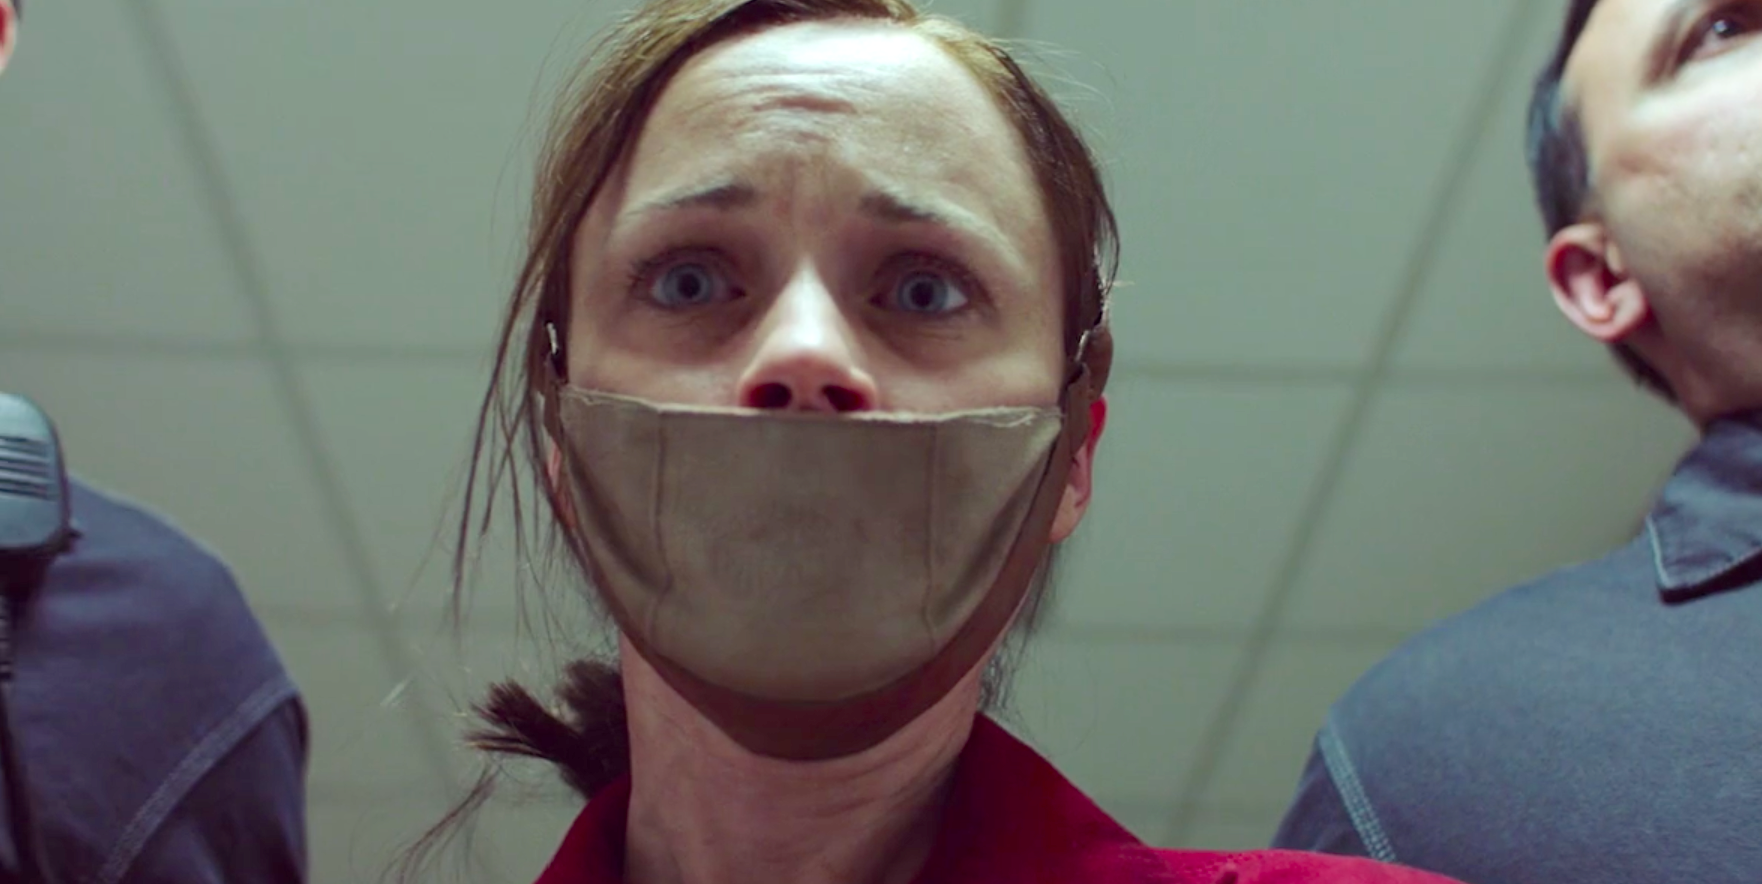 15 Reviews of Hulu's The Handmaid's Tale That Will Shake You to Your Core